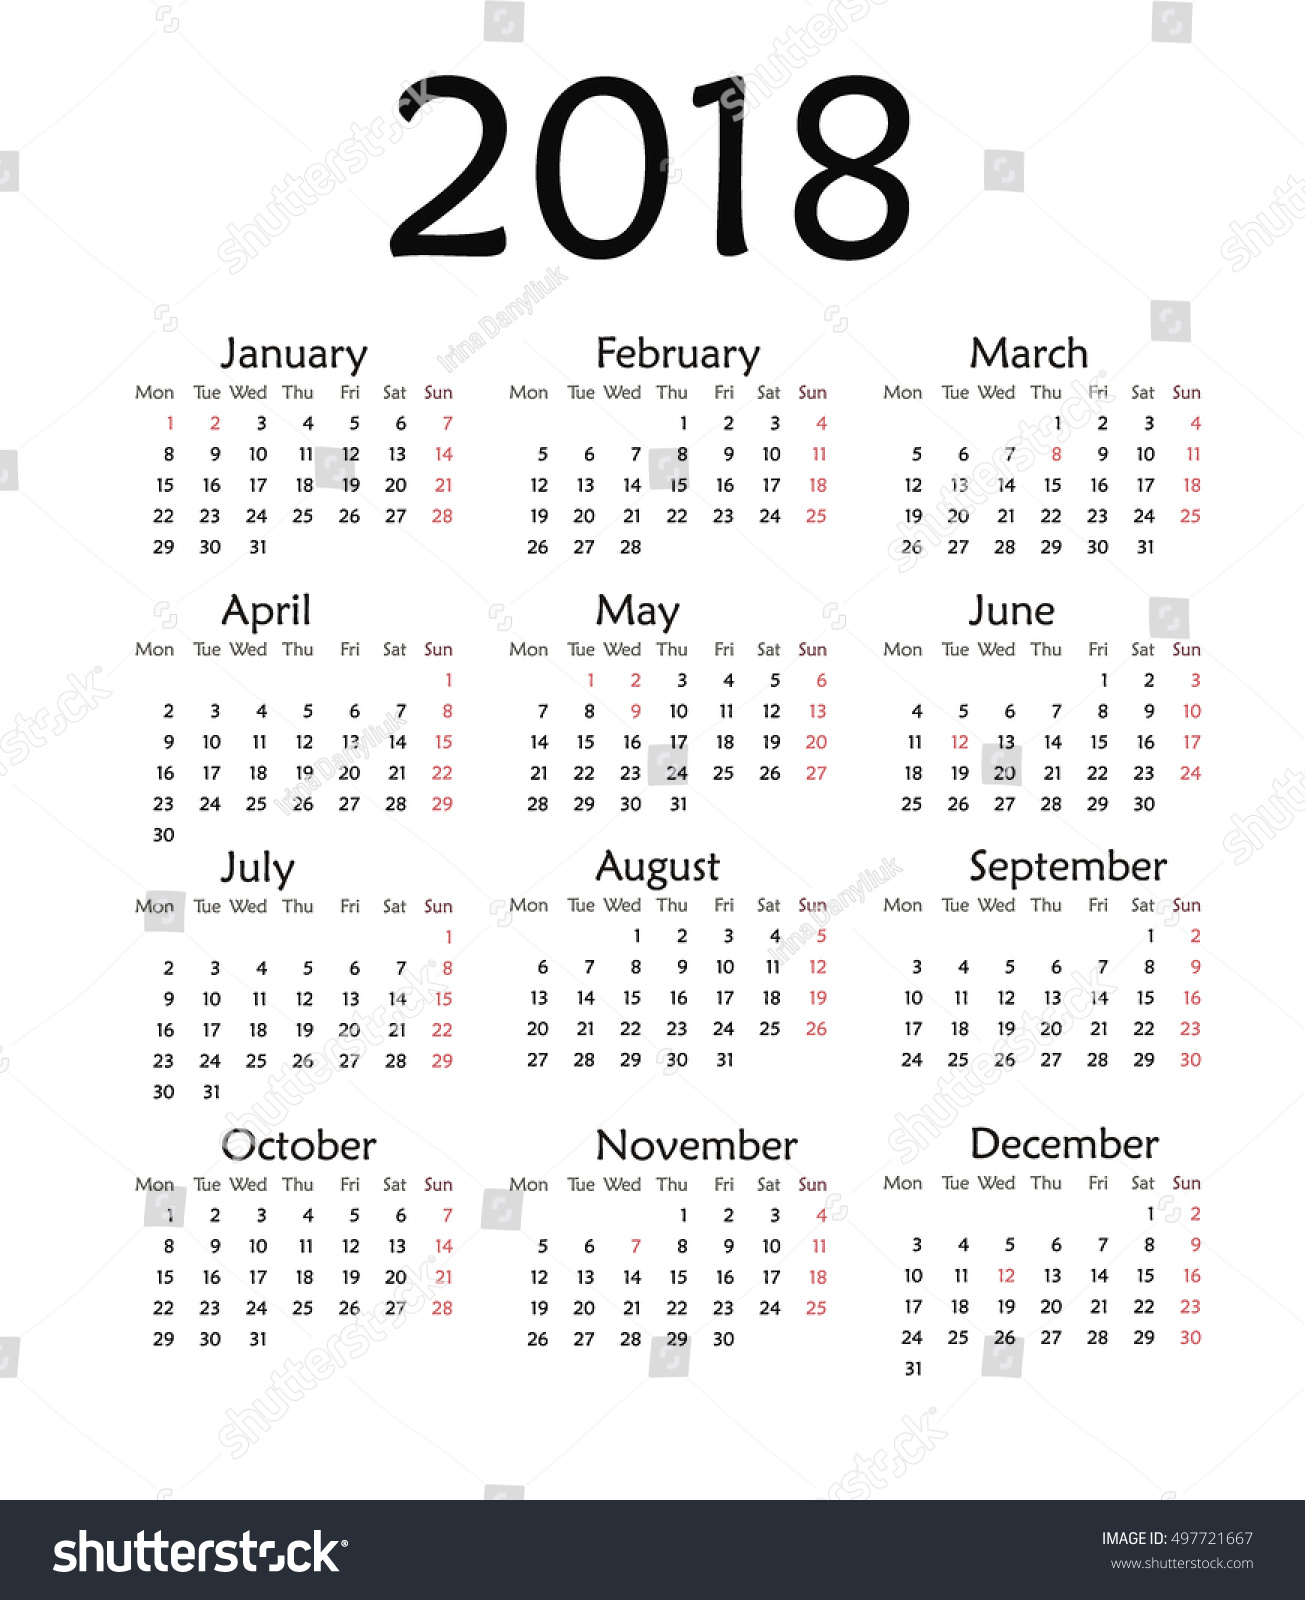 simple calendar for 2018 vector template design monthly date illustration 2018 calendar week organizer simple